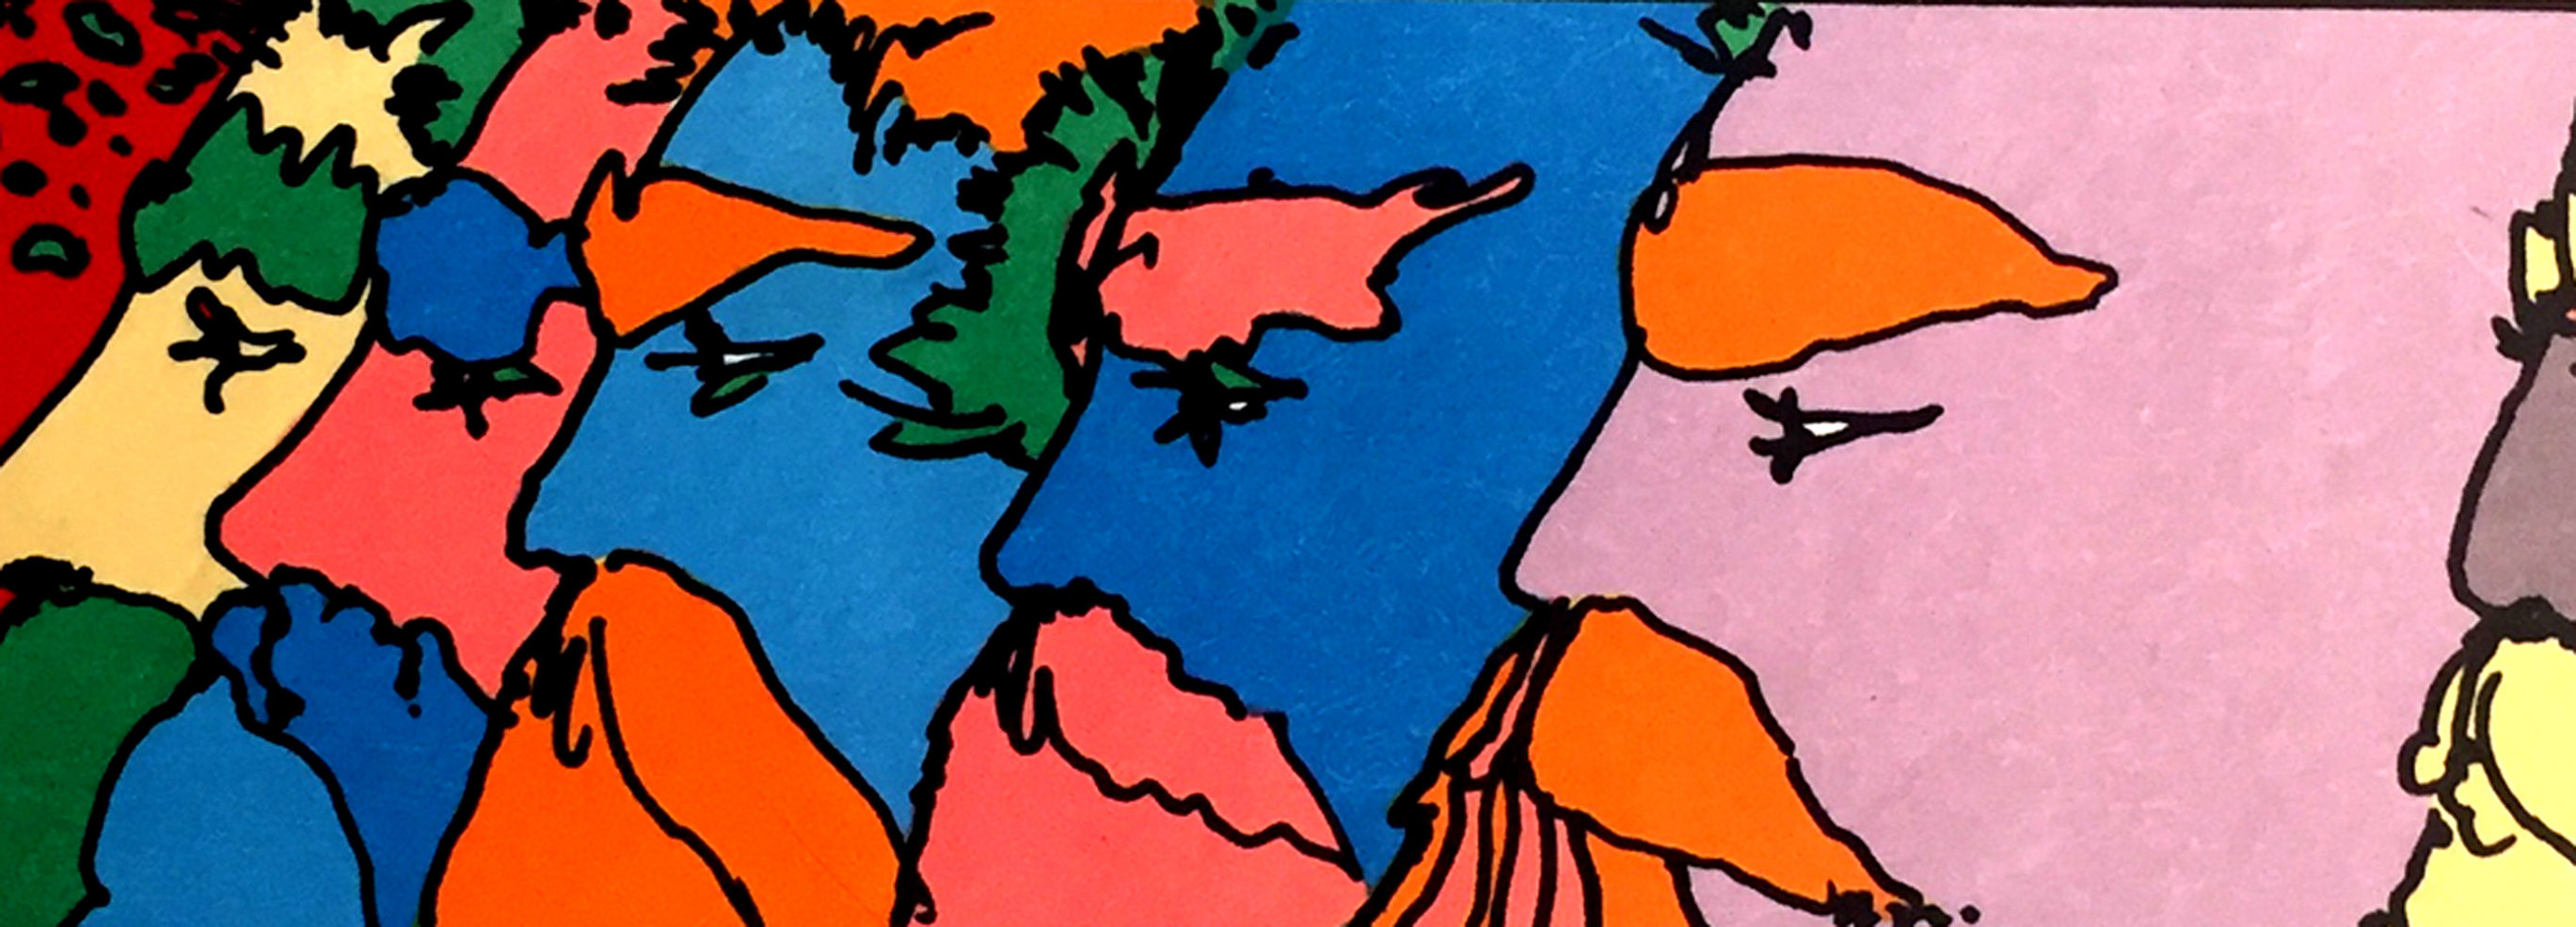 Five Faces Limited Edition Print by Peter Max